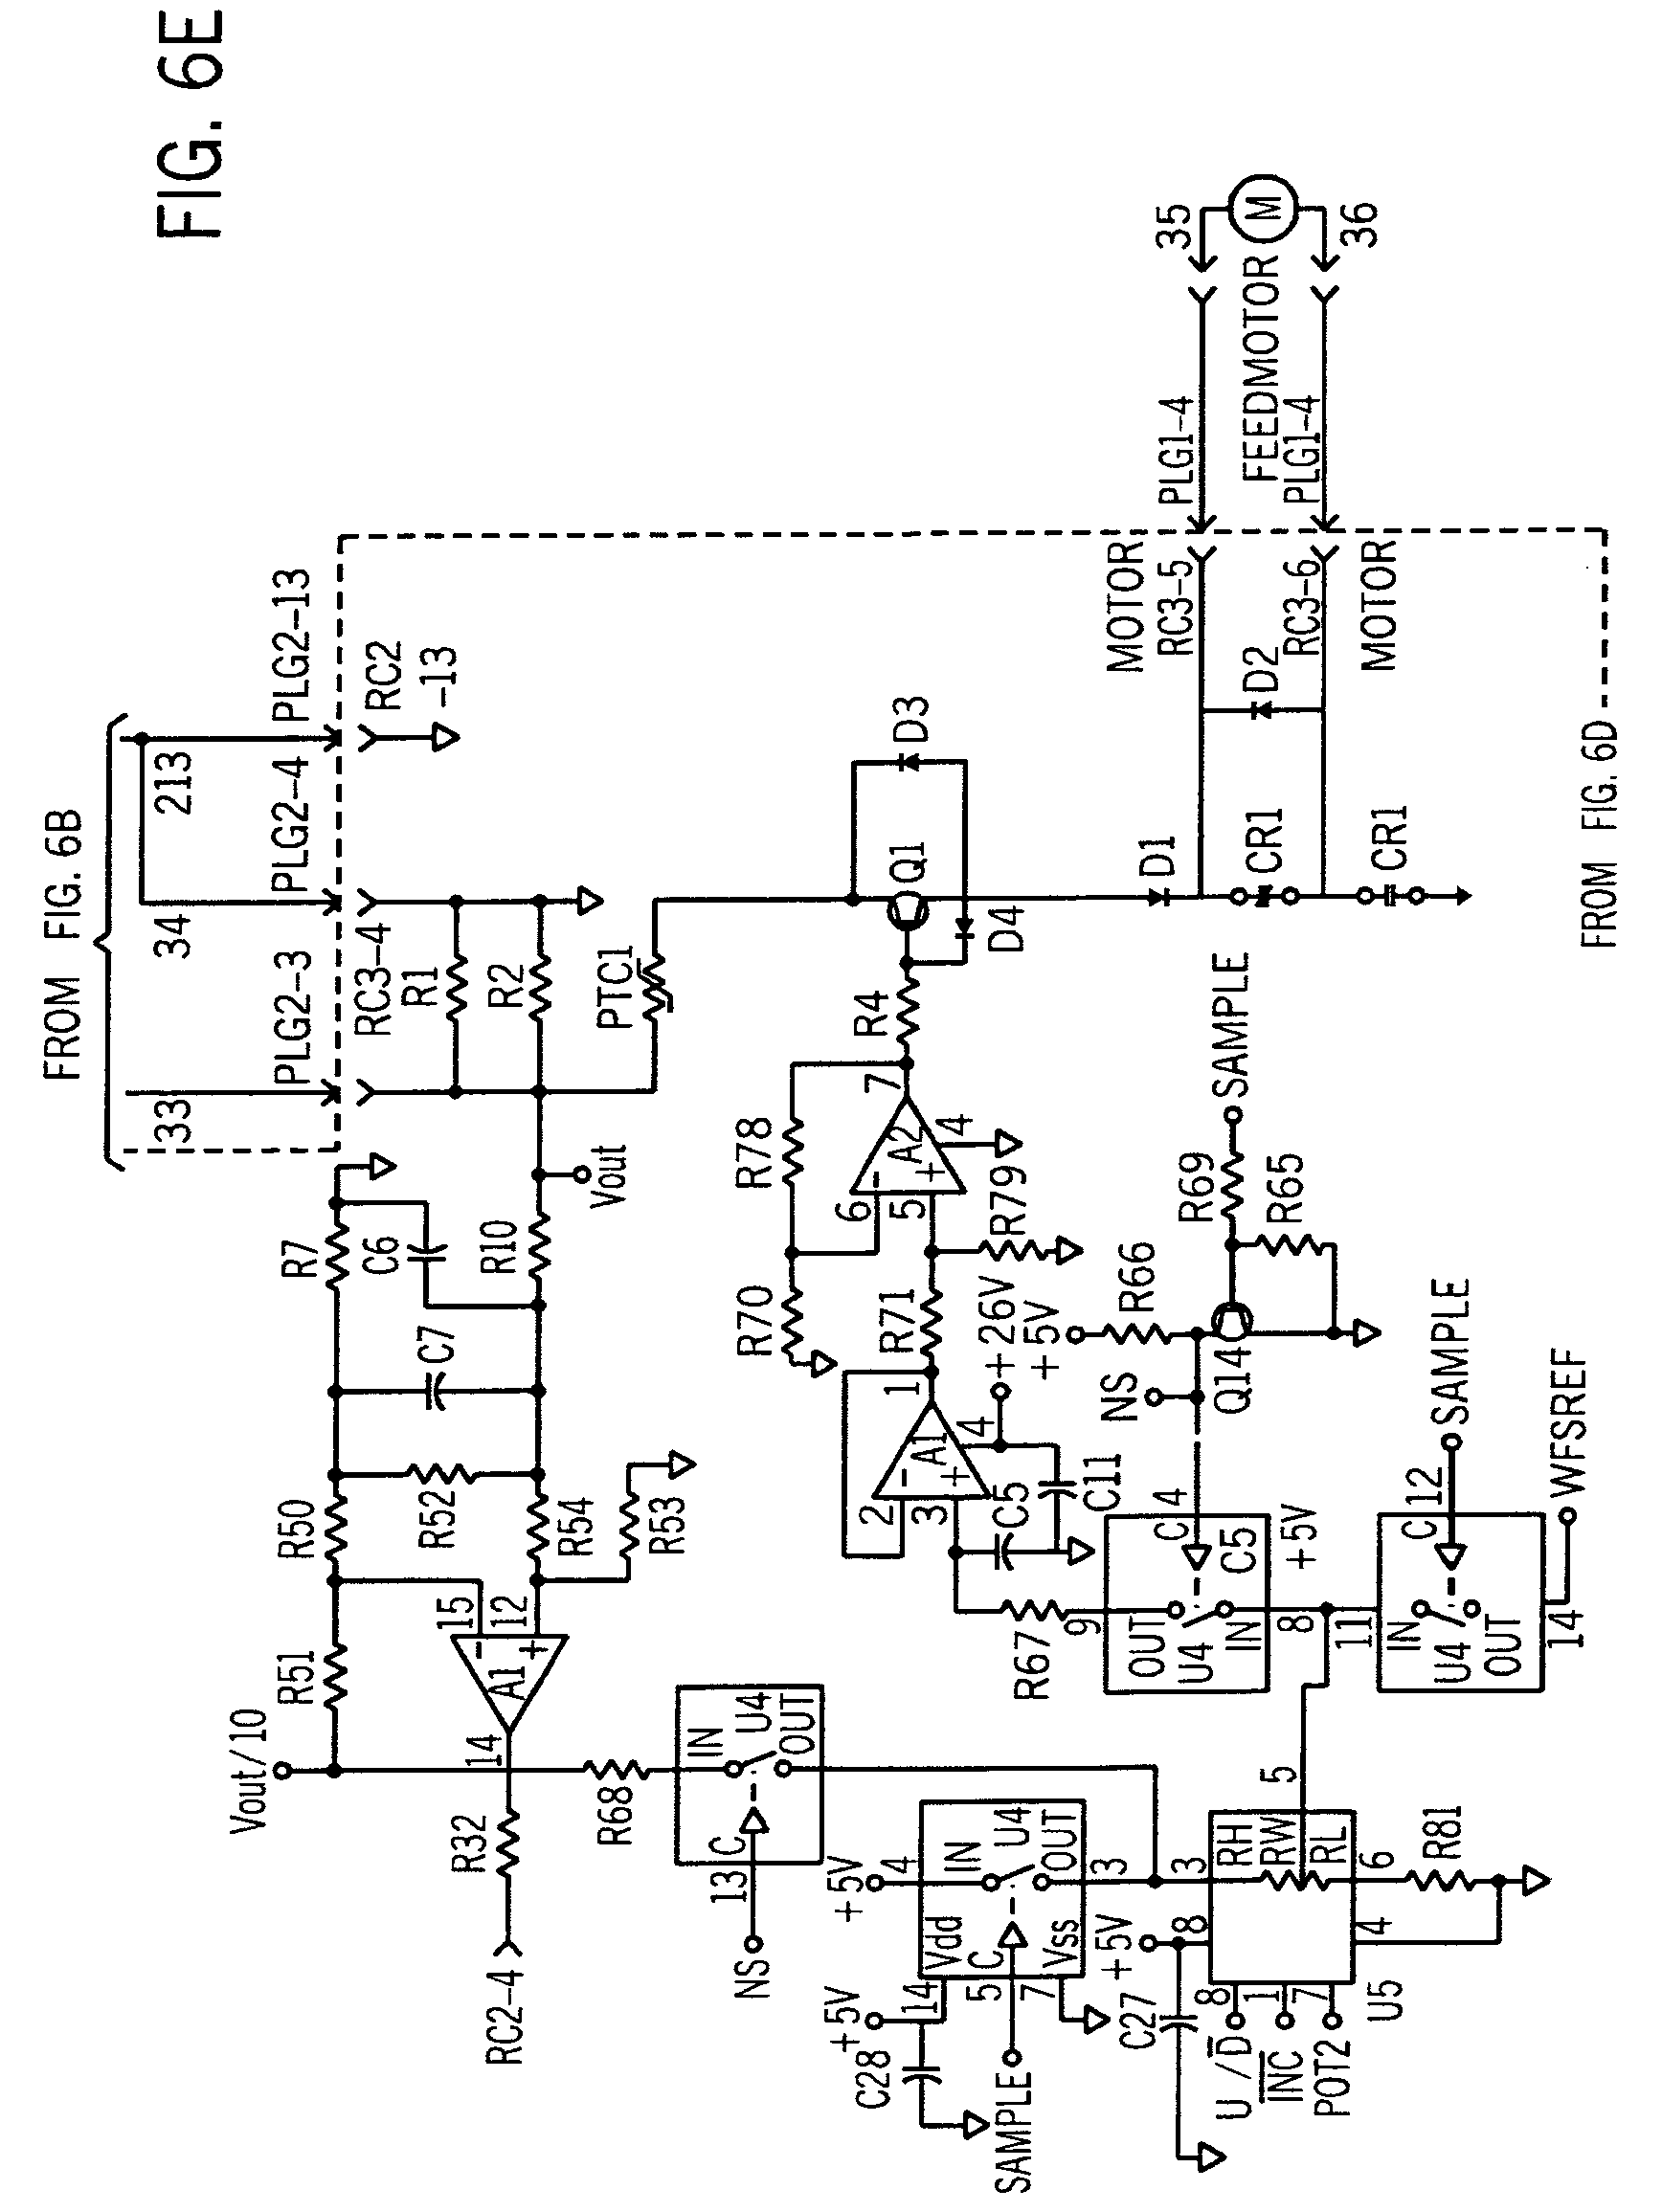 Dlh 600 Hobart Mixer Wiring Diagrams Diagram